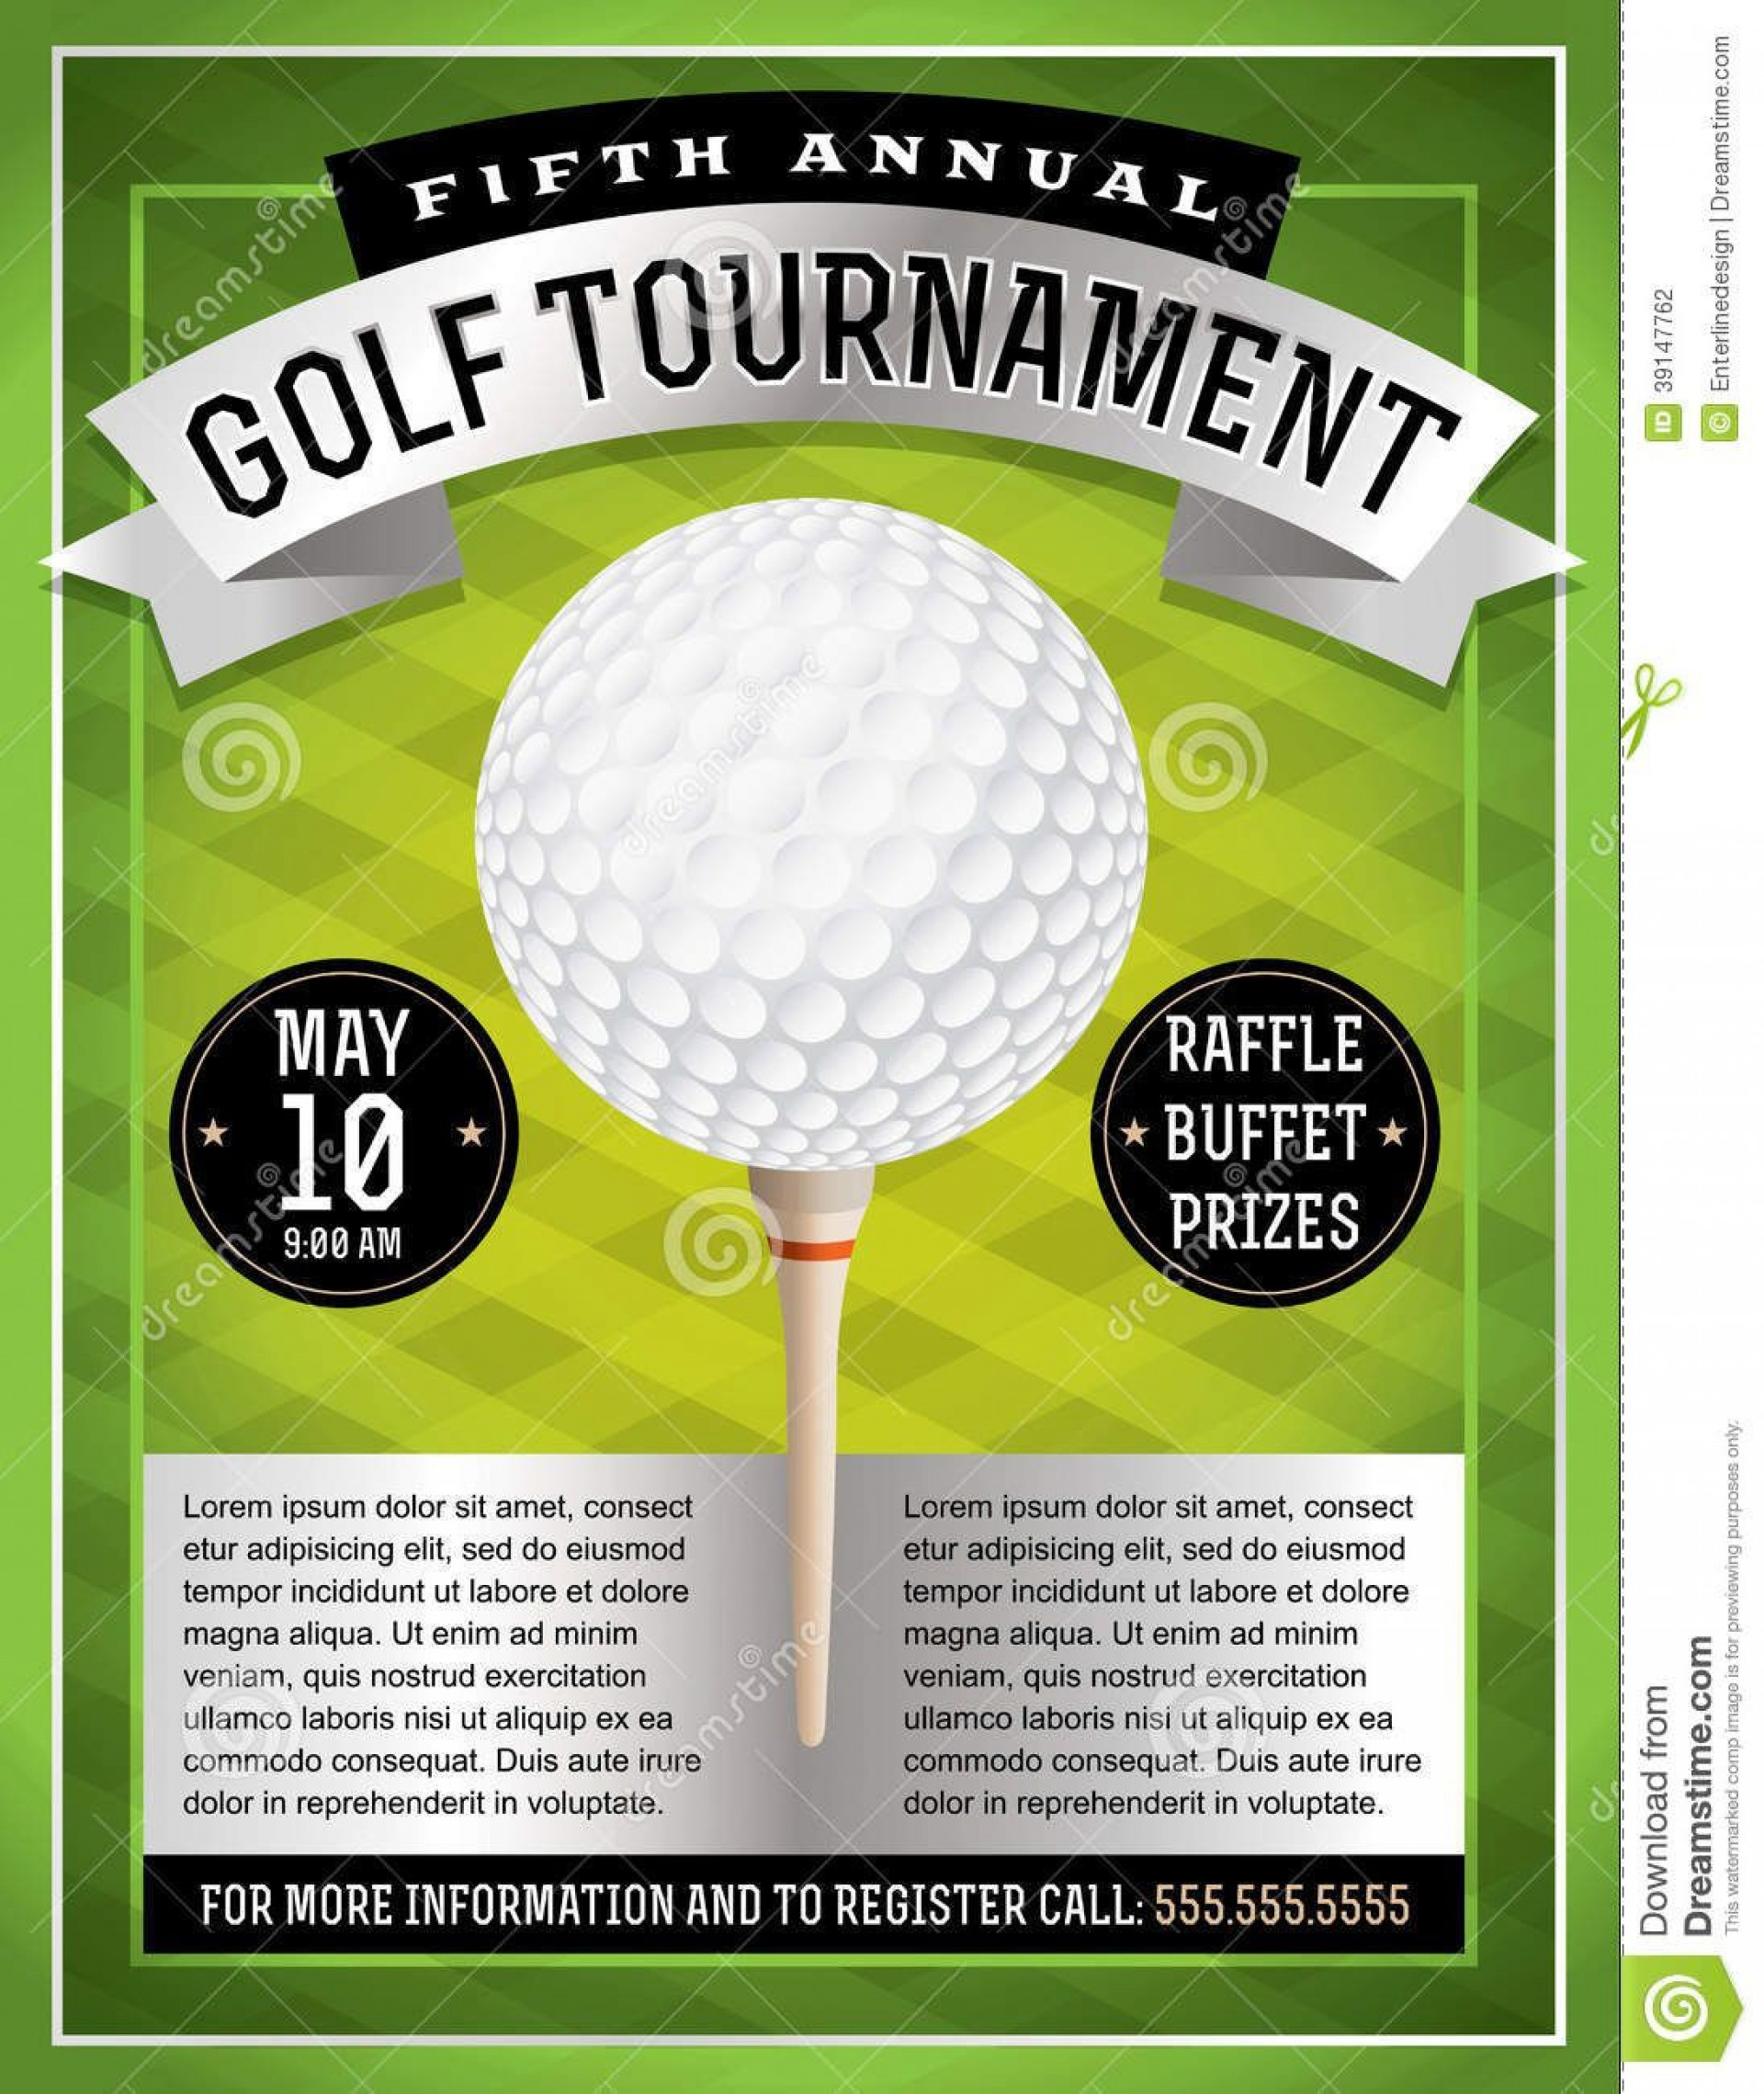 007 Imposing Golf Tournament Flyer Template Image  Word Free Pdf1920